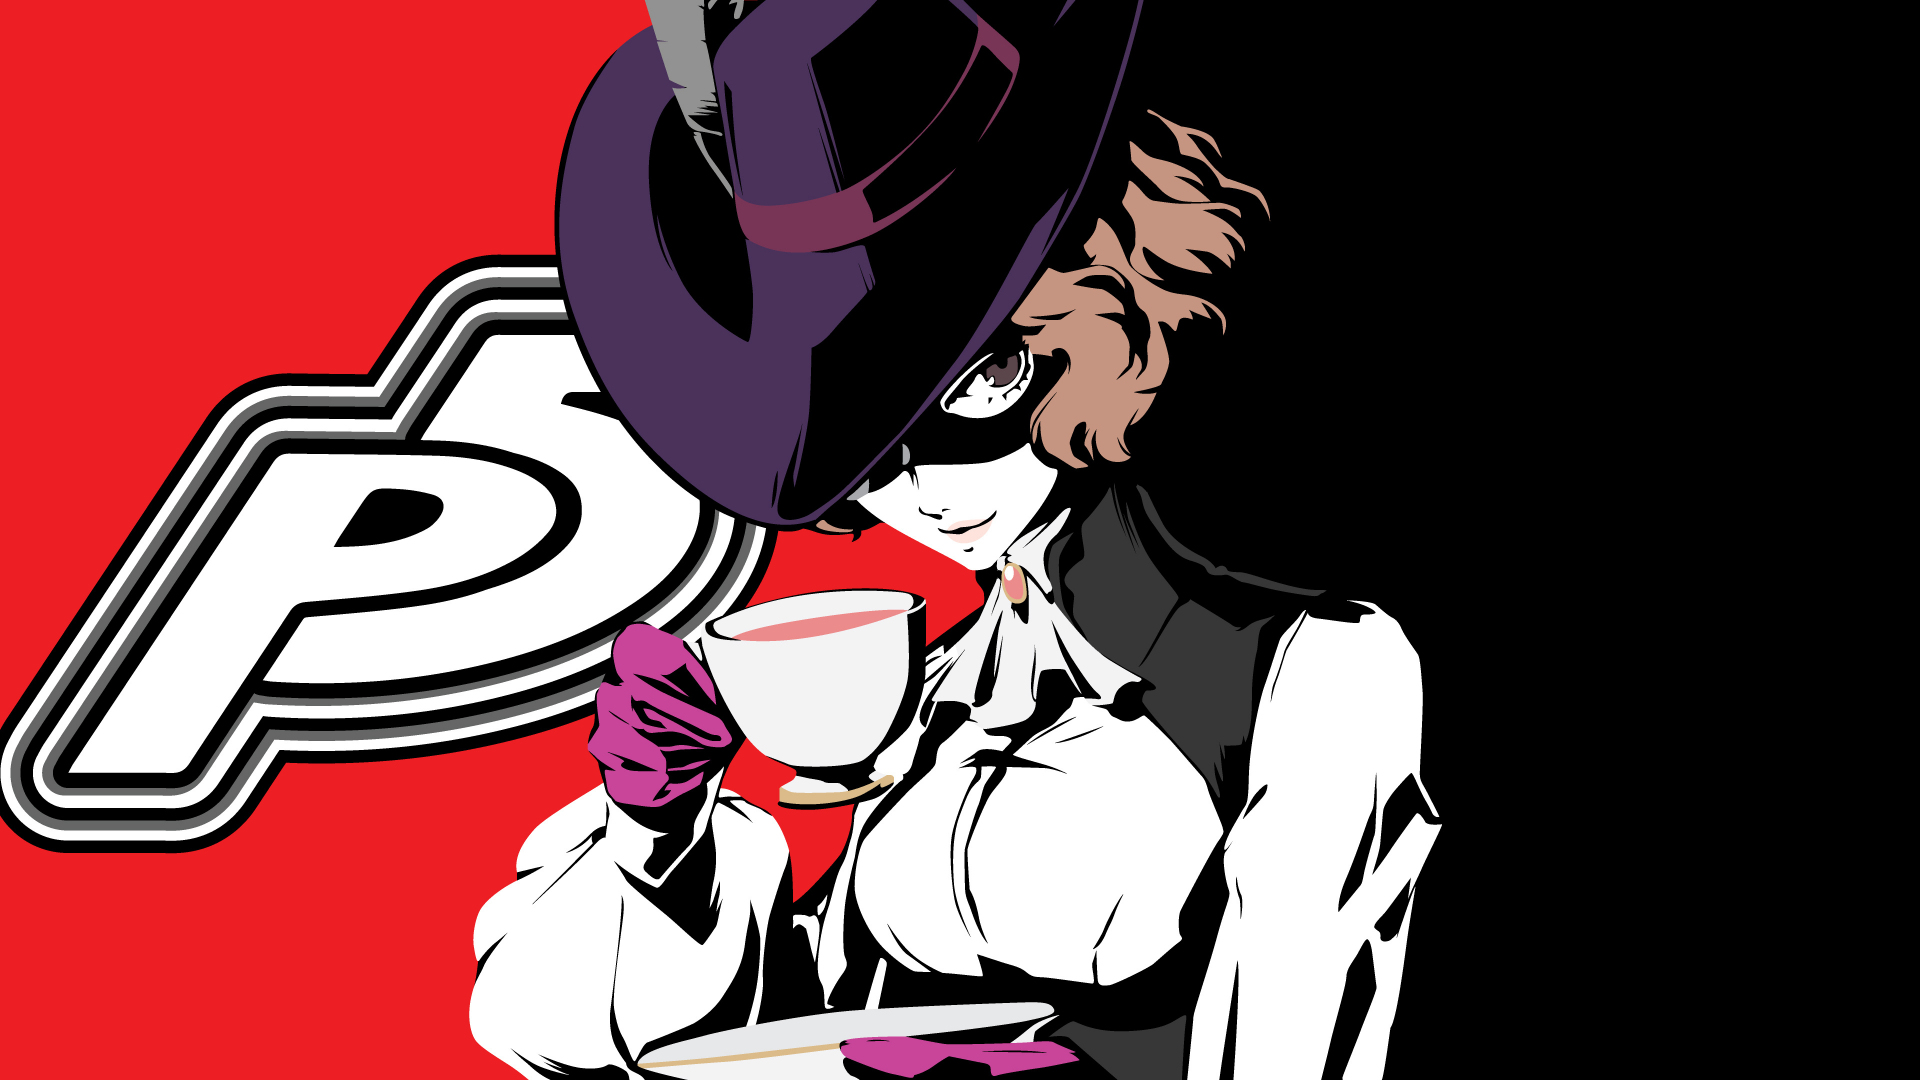 Download 1920x1080 Wallpaper Anime Girl Persona 5 Video Game Full